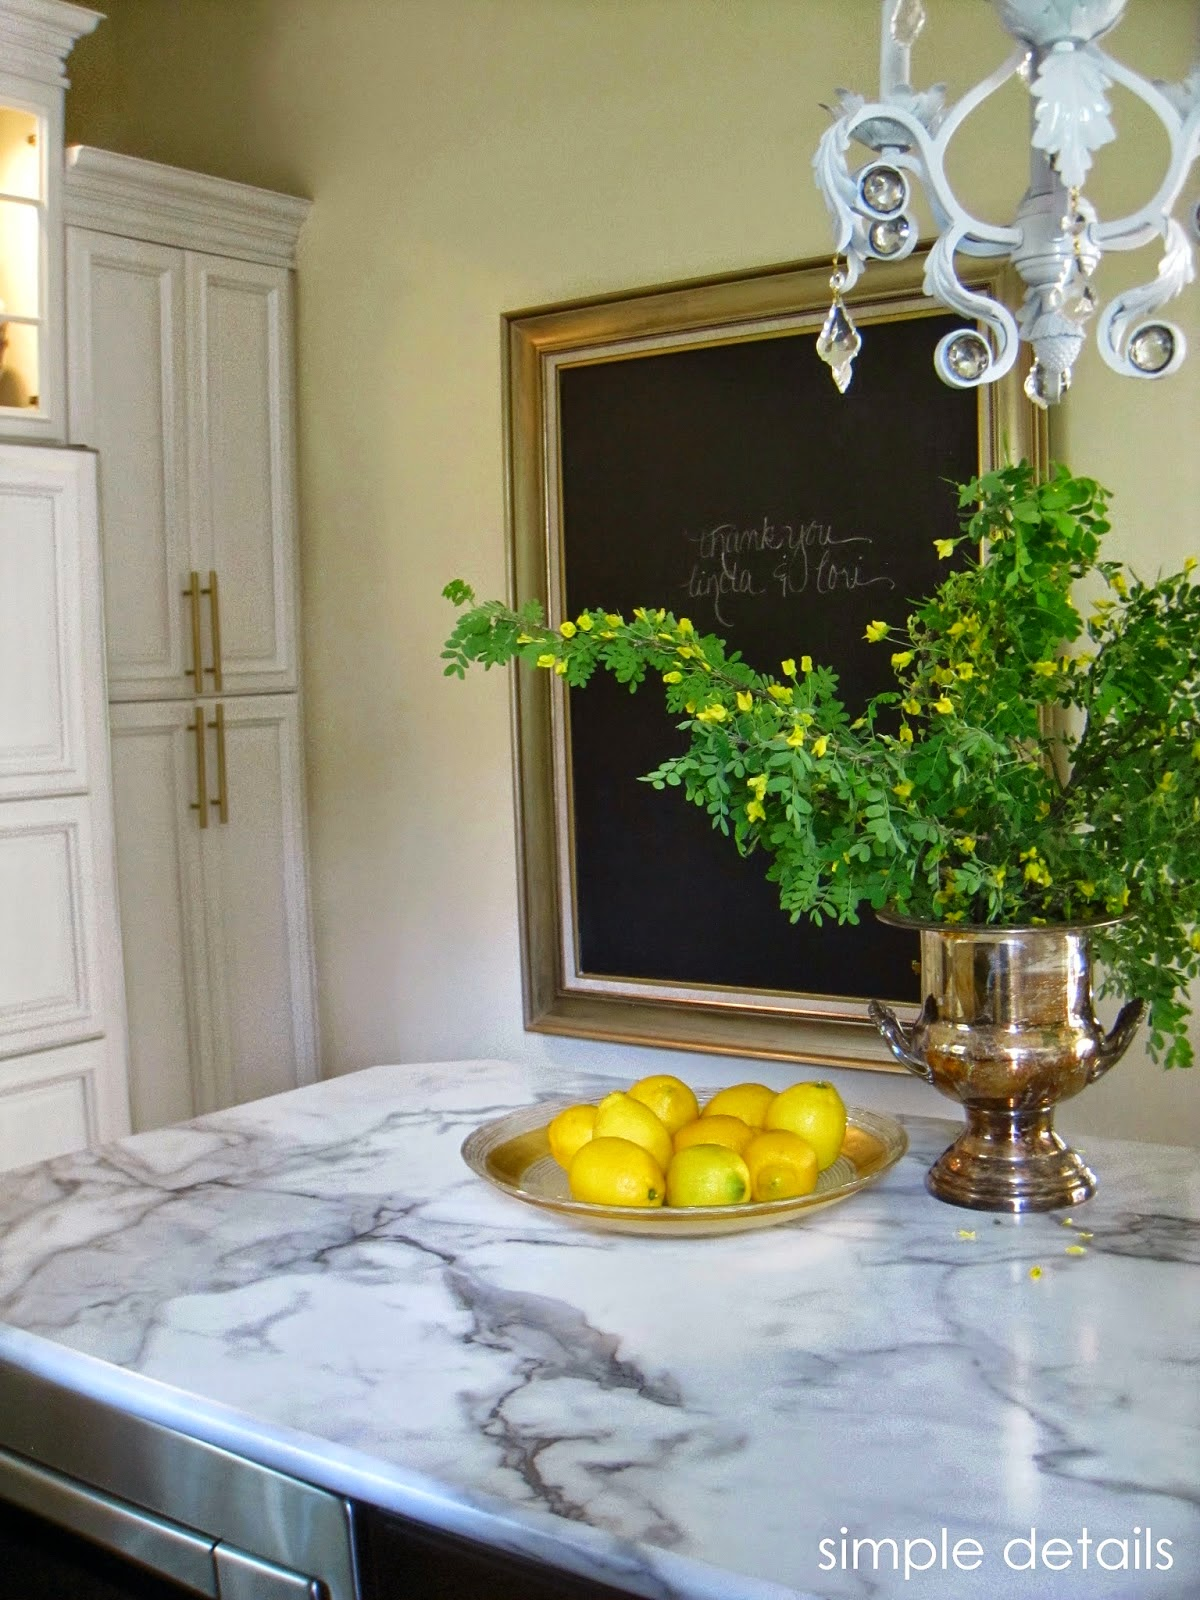 Can You Paint Countertops Formica Simple Details: Formica Calacatta Marble Review